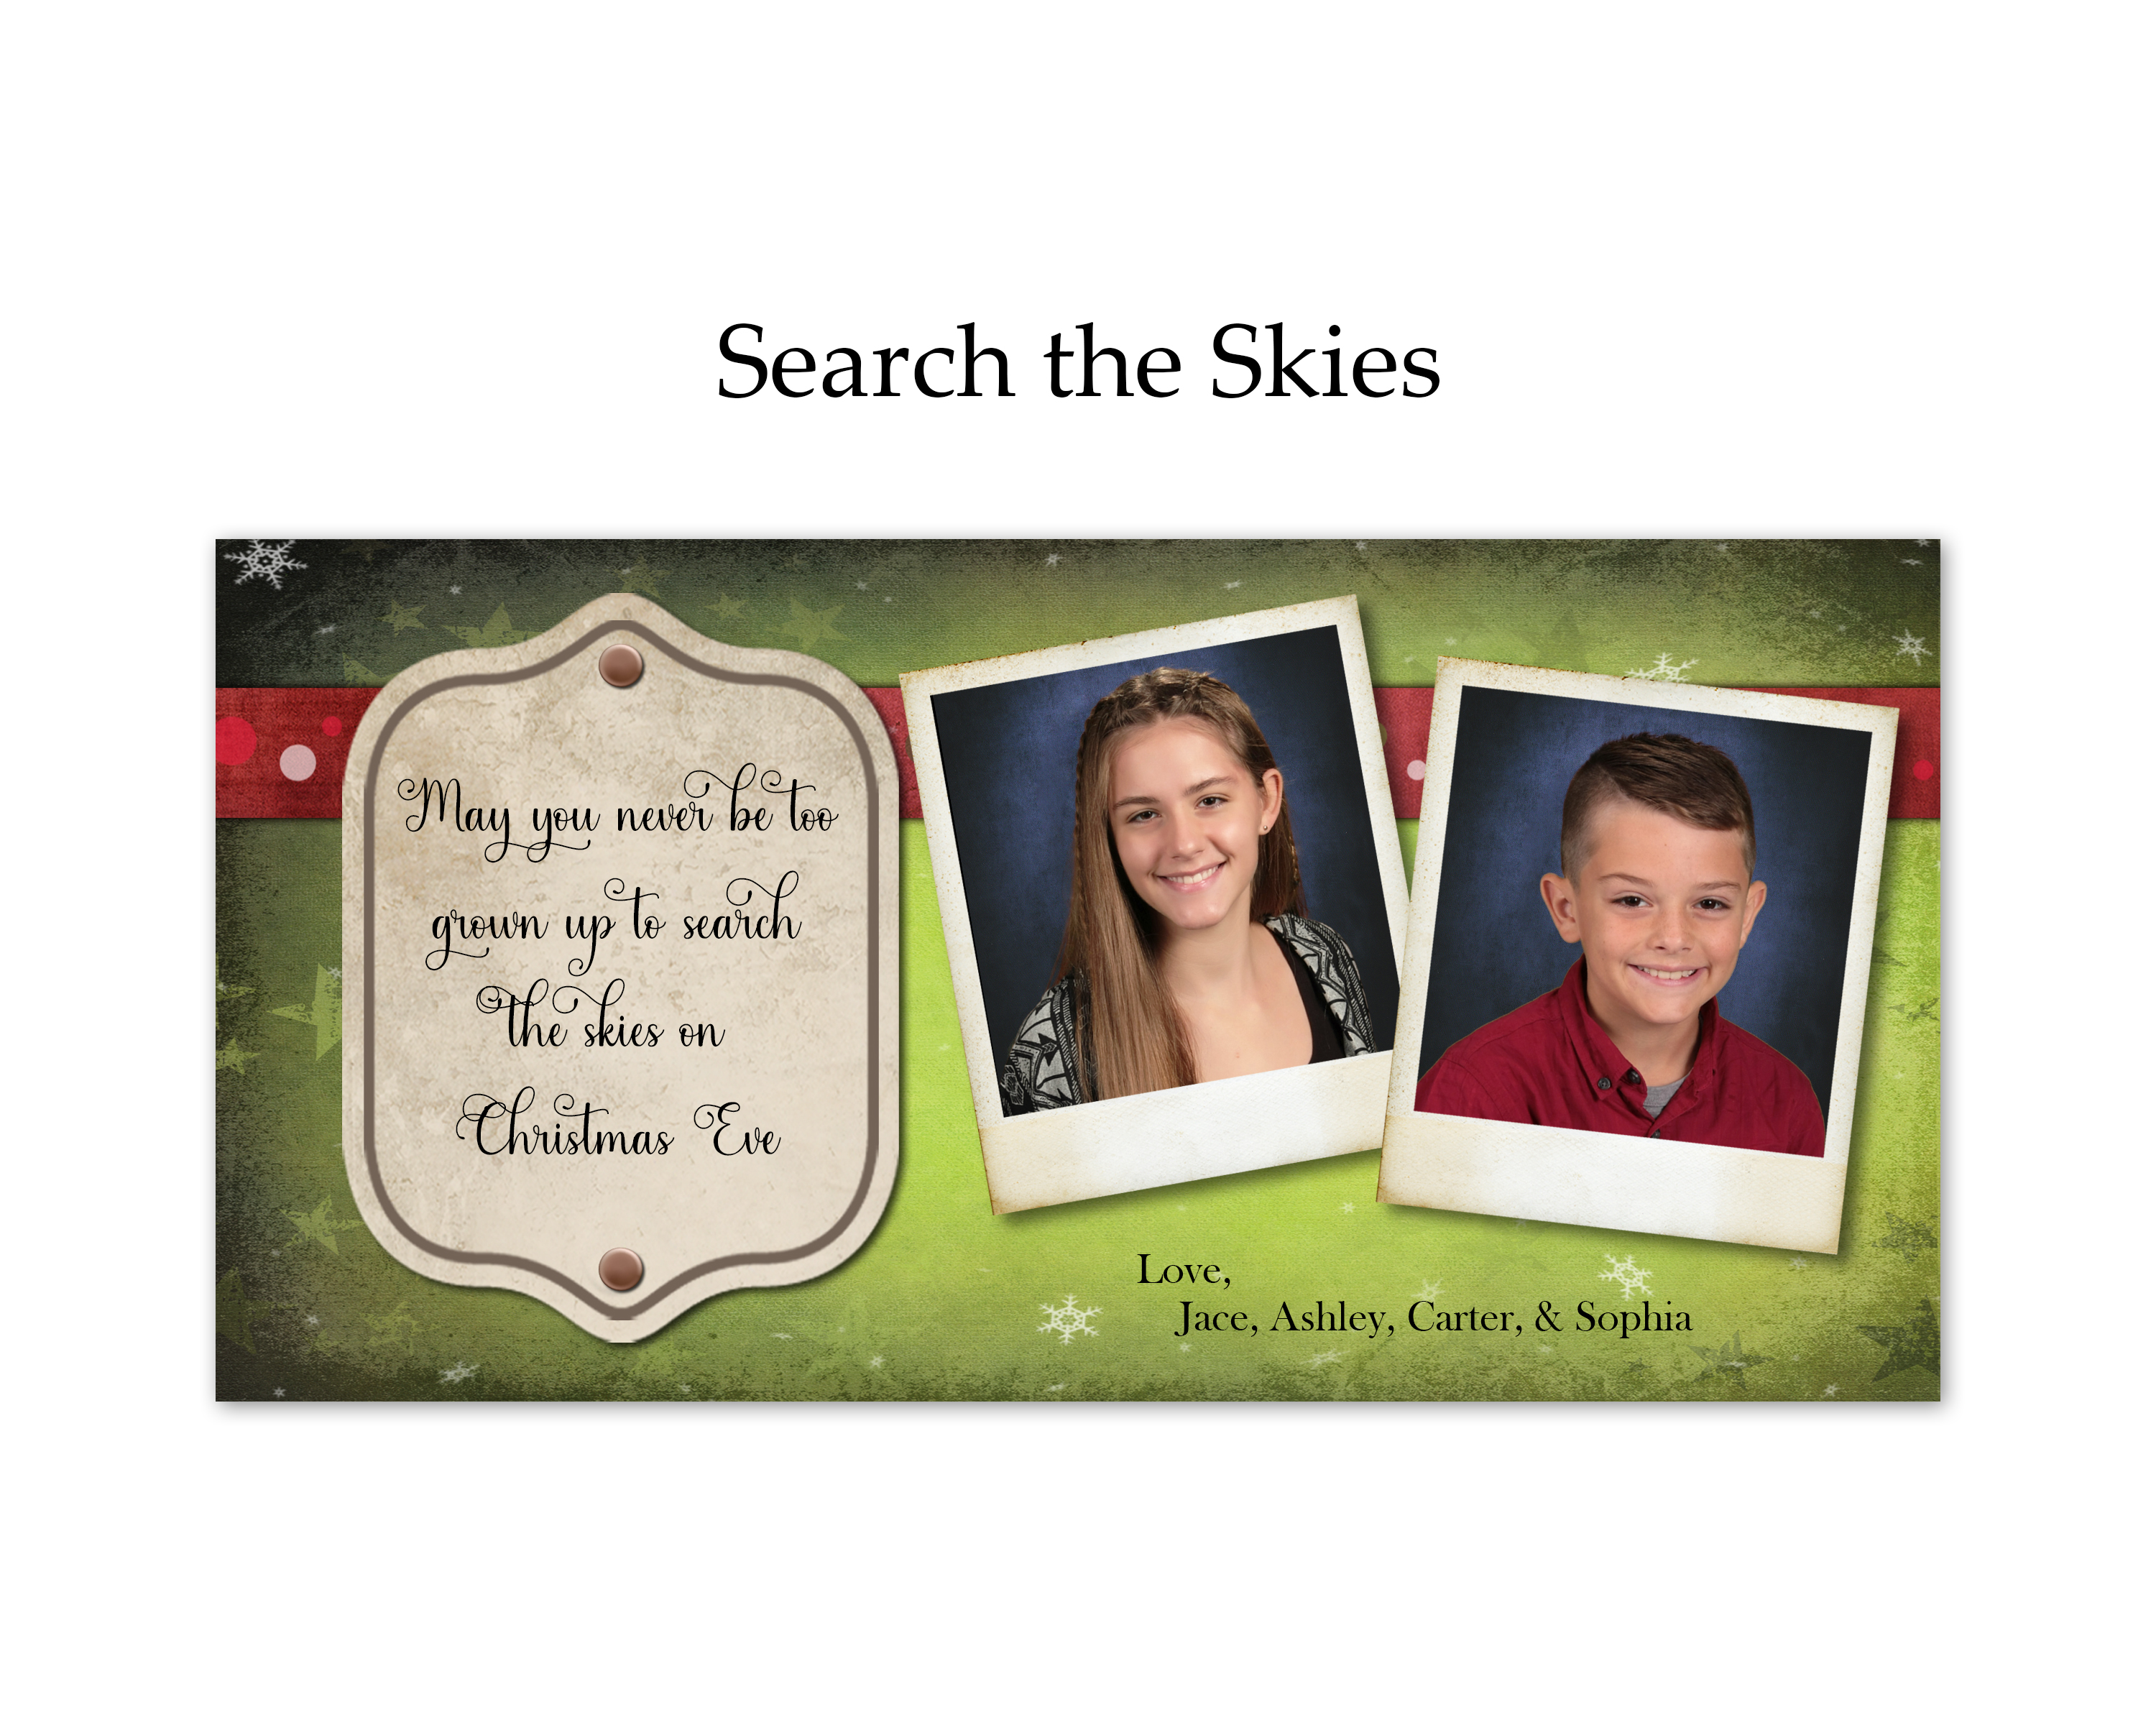 Search the Skies